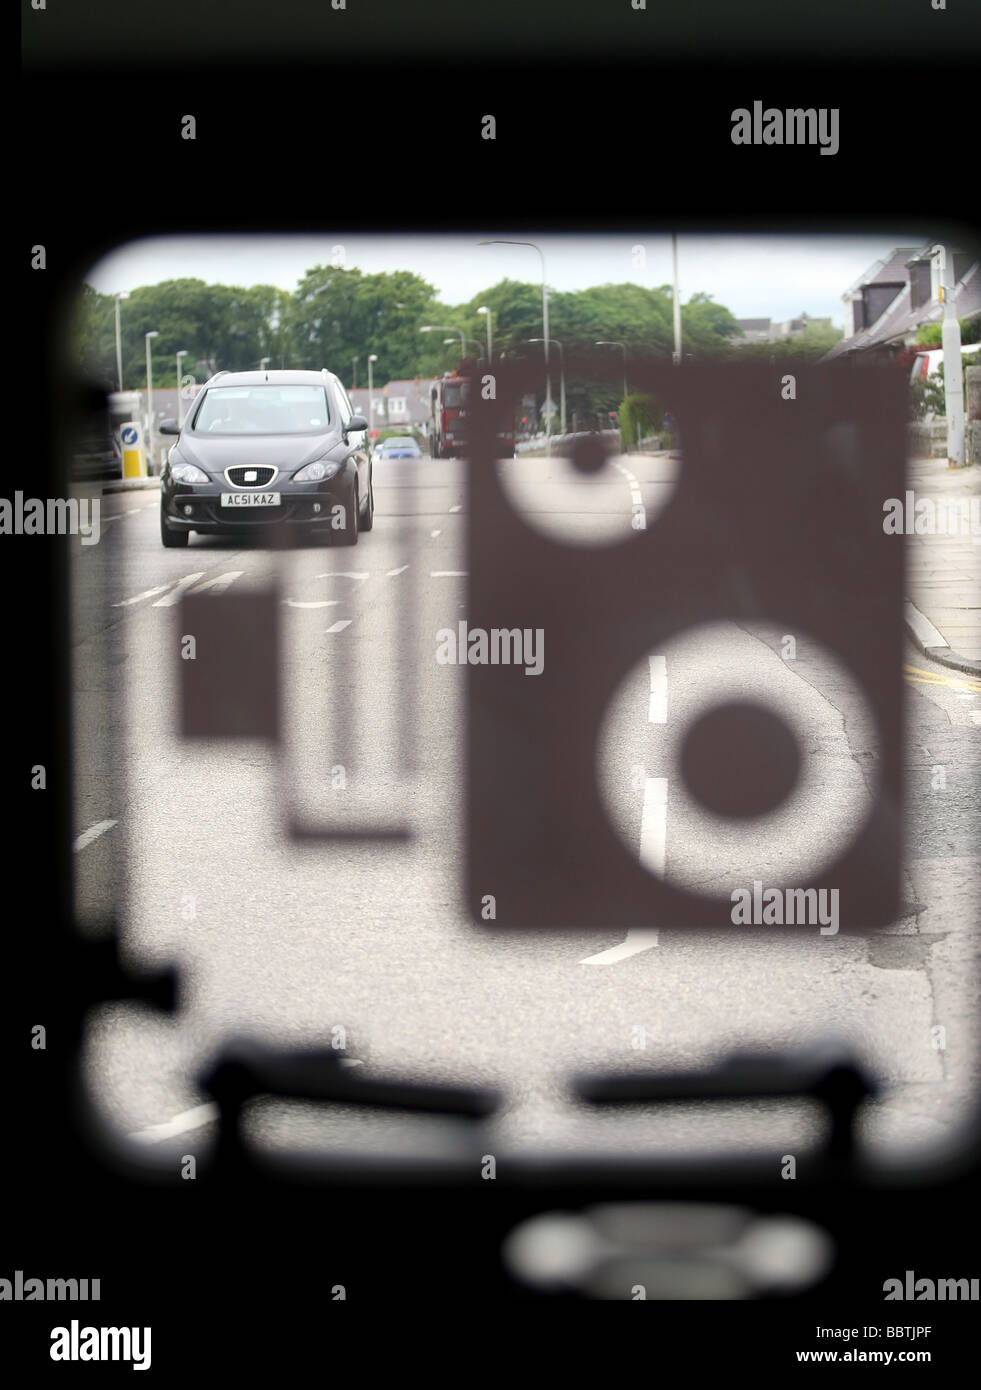 E Car Symbol Stockfotos & E Car Symbol Bilder - Alamy